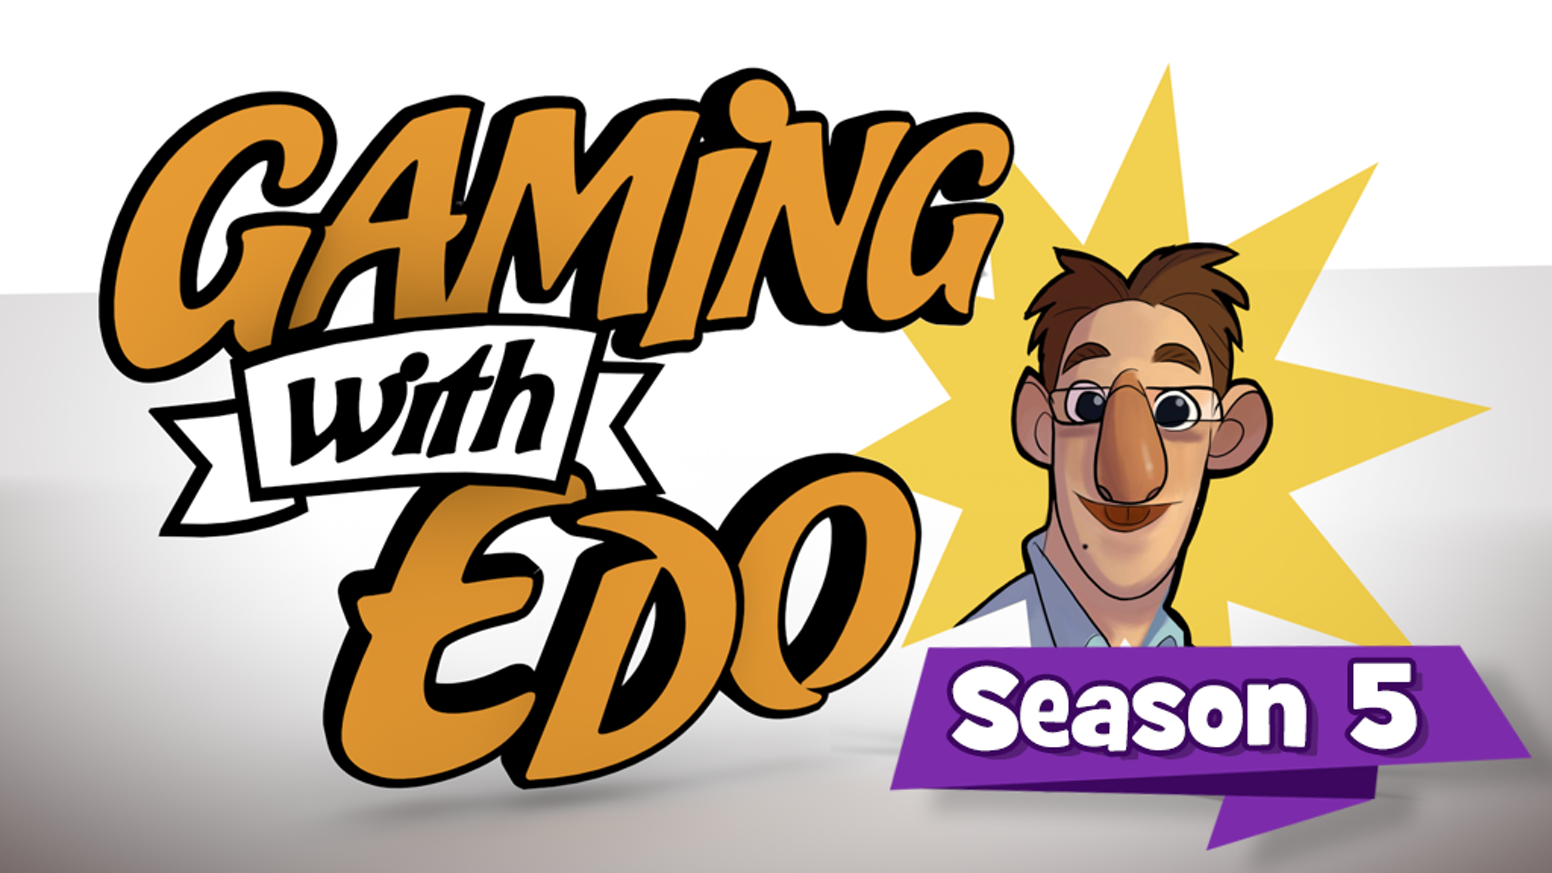 Help make Season 5 of Gaming with Edo better than ever!